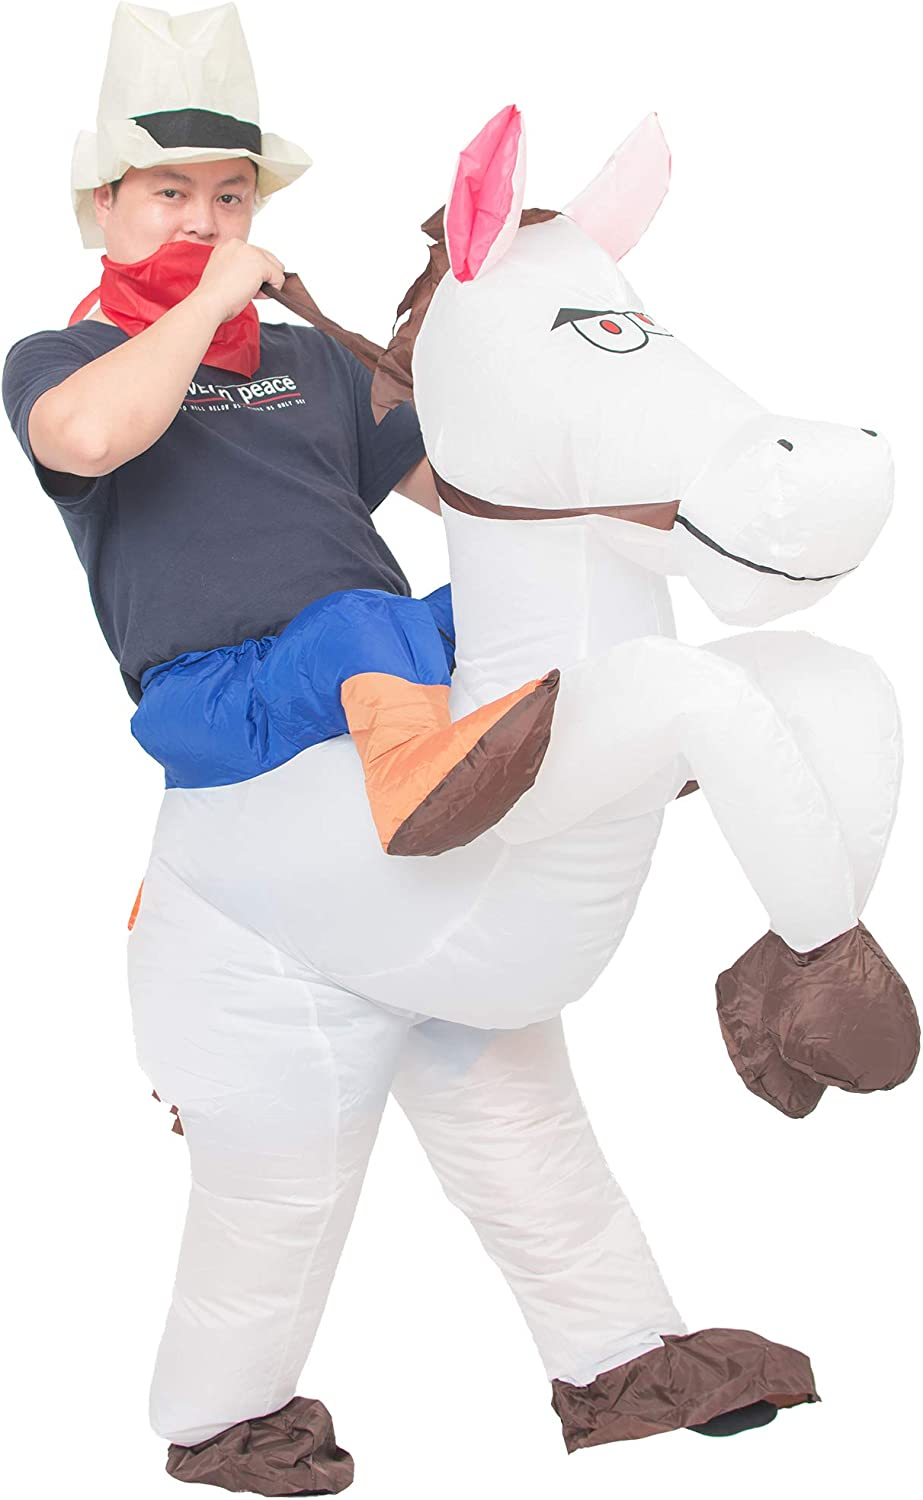 JYZCOS Genuine Inflatable Cowboy Costume Western Dress Fancy Horse Rider Oakland Mall